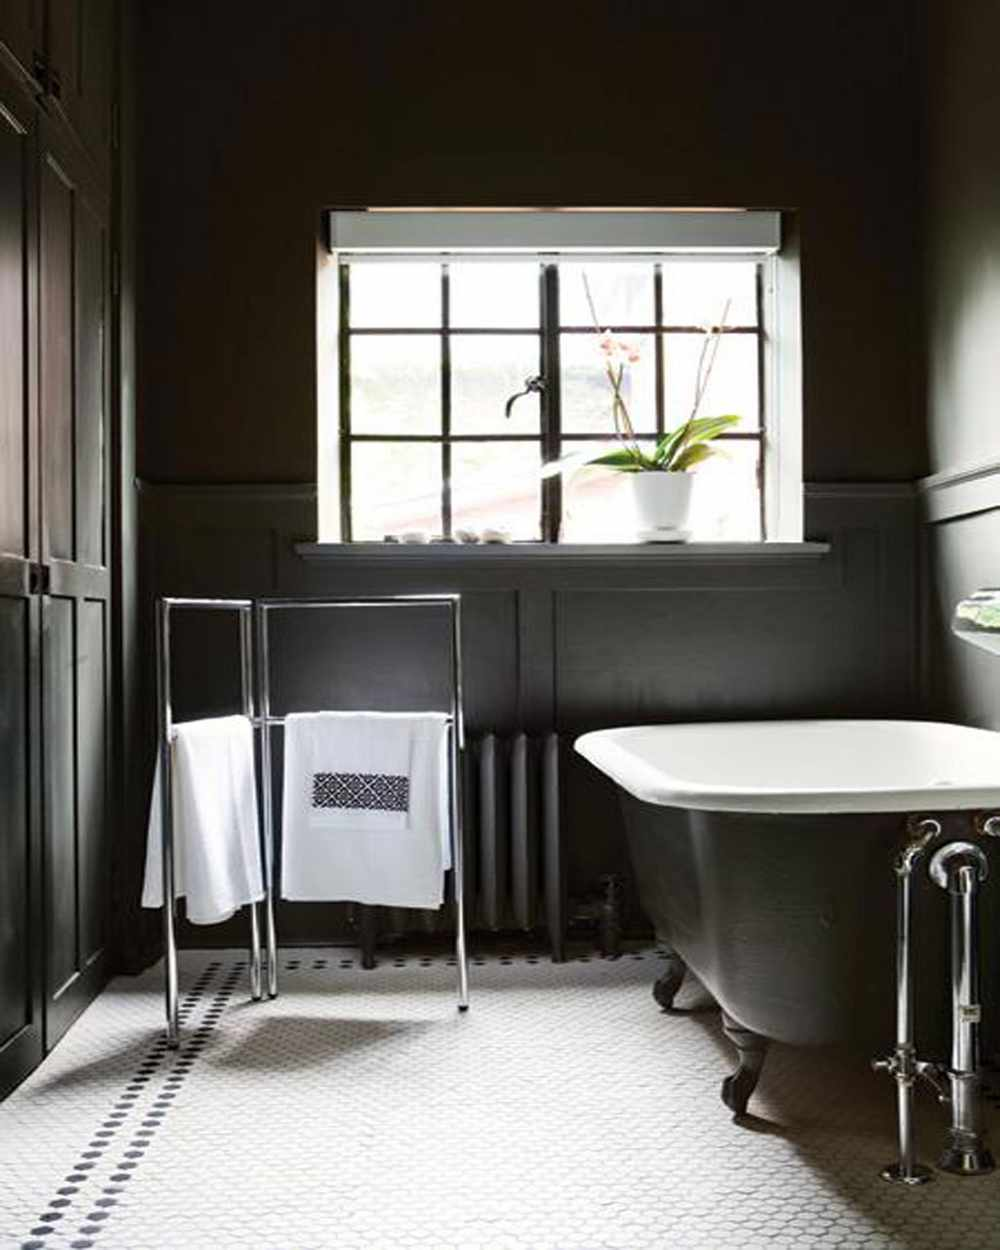 Traditional-Black-and-White-Home-Bathroom-Decor